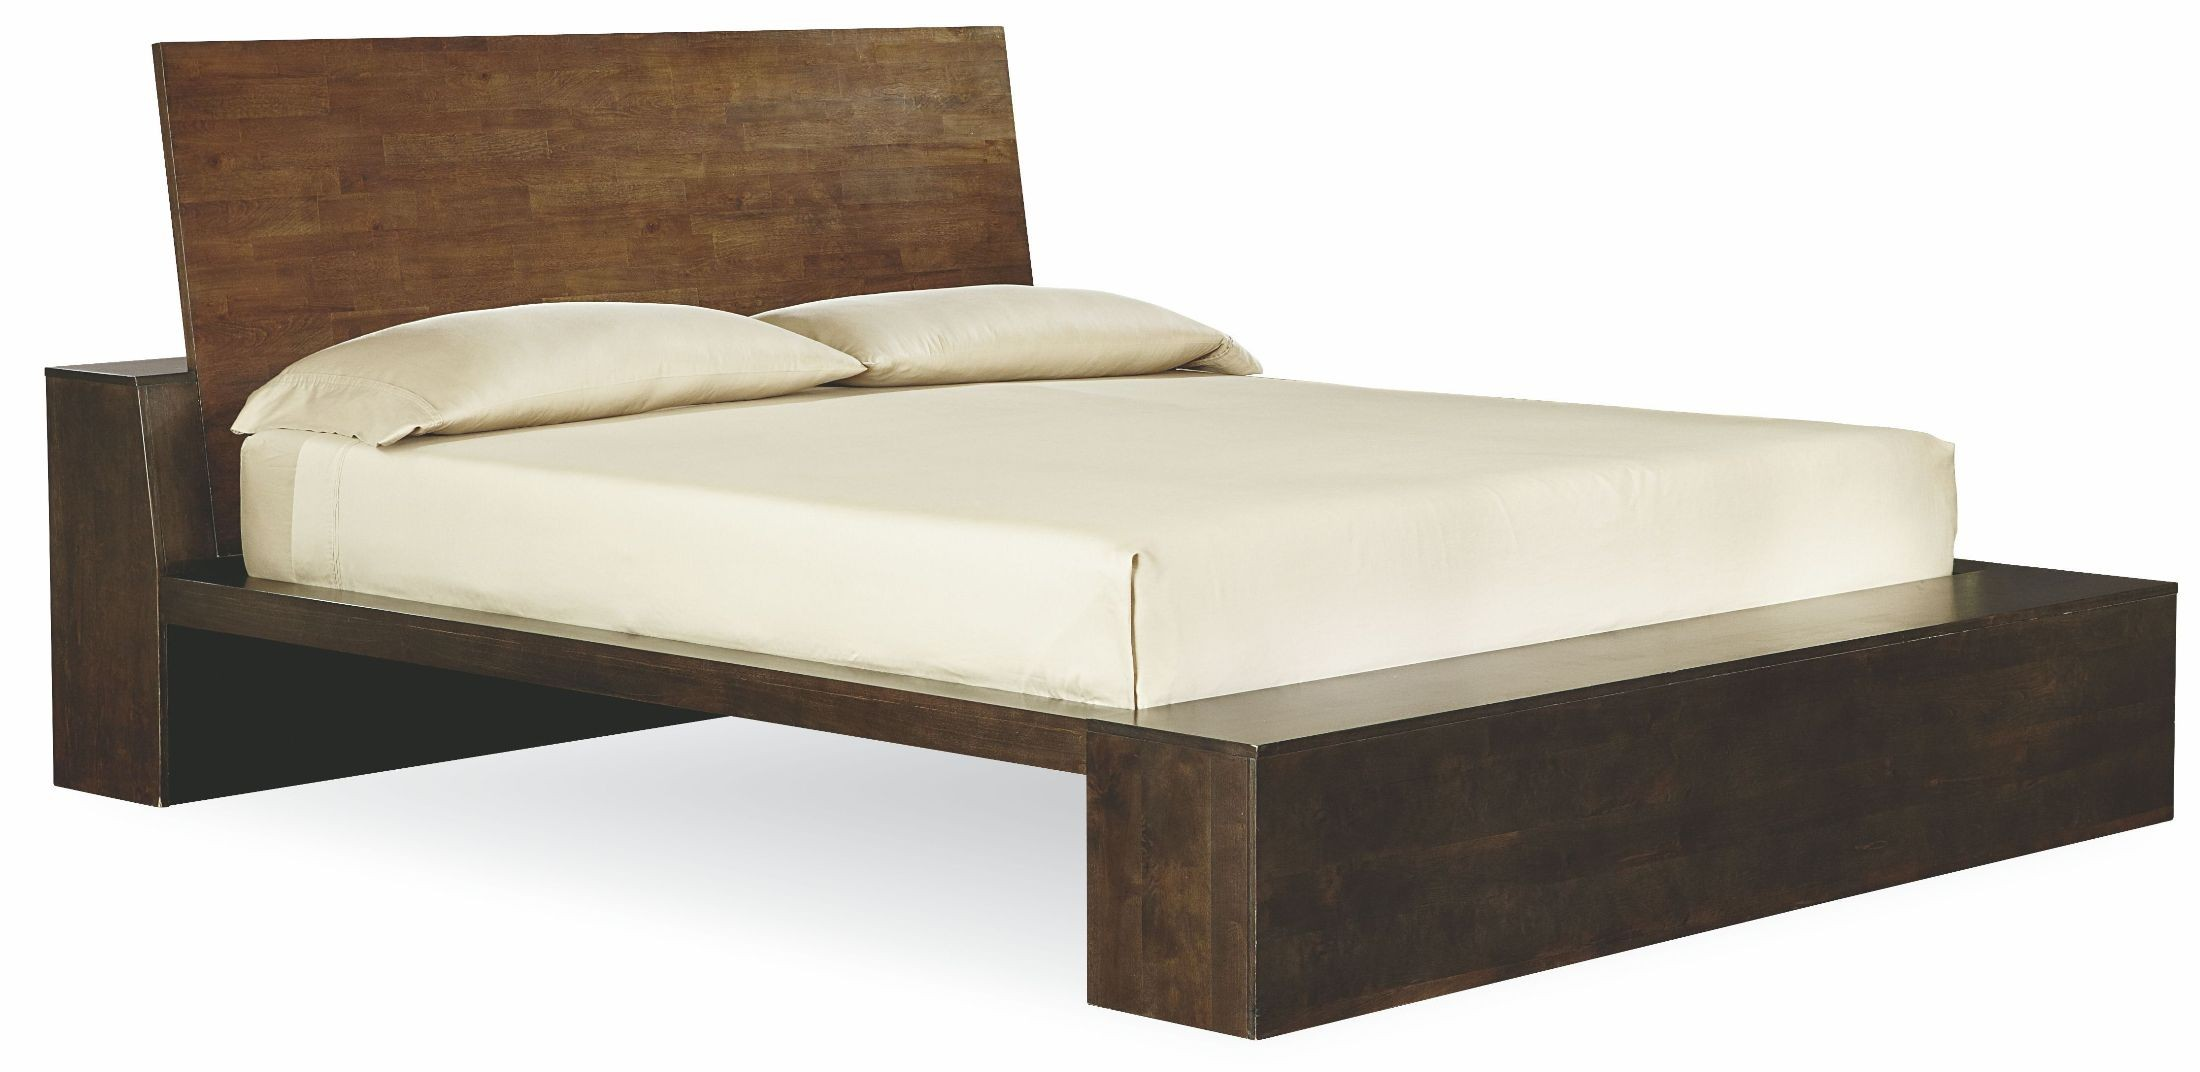 Kateri cal king platform bed from legacy classic 3600 California king platform bed